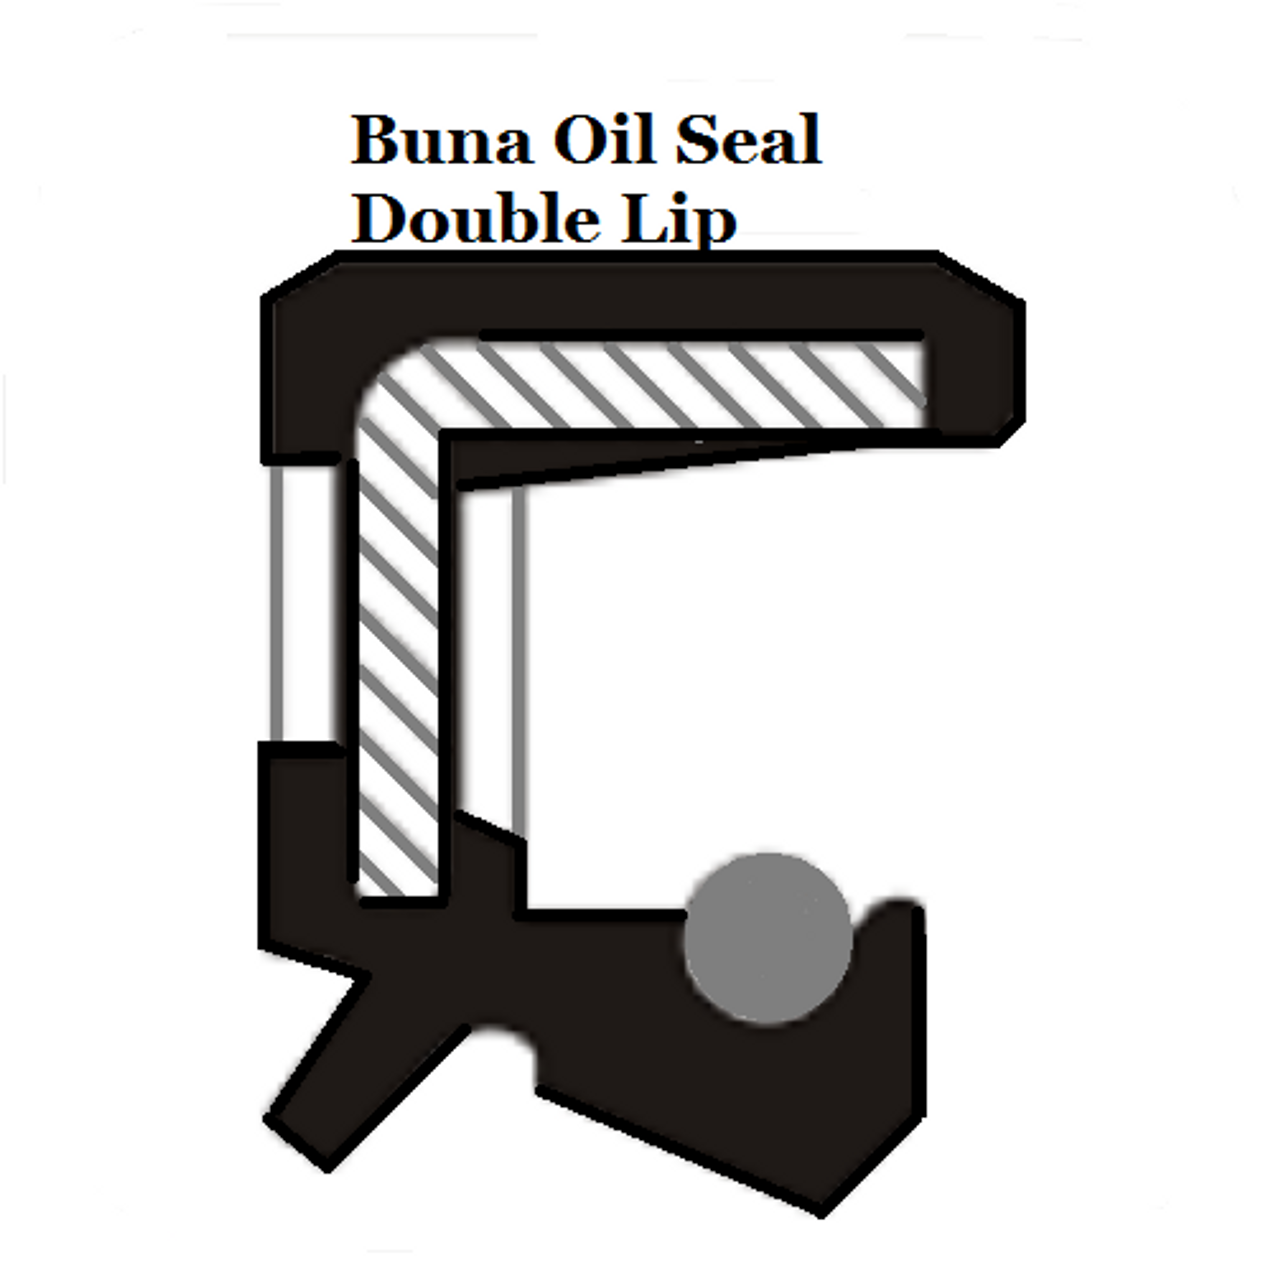 Metric Oil Shaft Seal 32 x 58 x 10mm Double Lip   Price for 1 pc